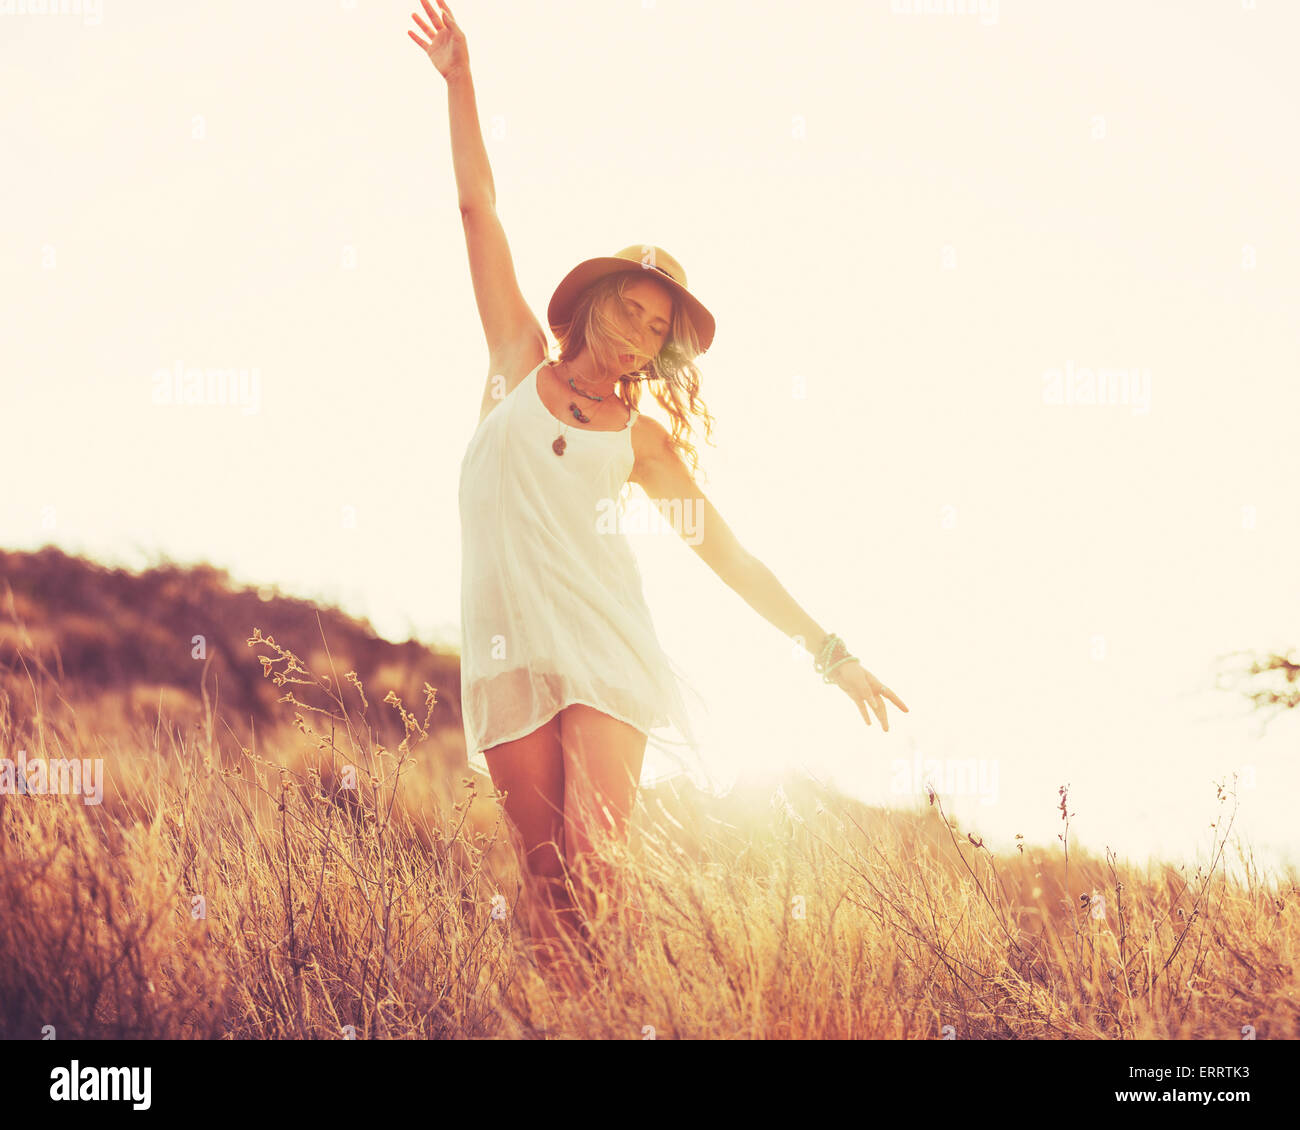 Fashion Portrait of Young Hipster Woman at Sunset, Retro Style Color Tones - Stock Image